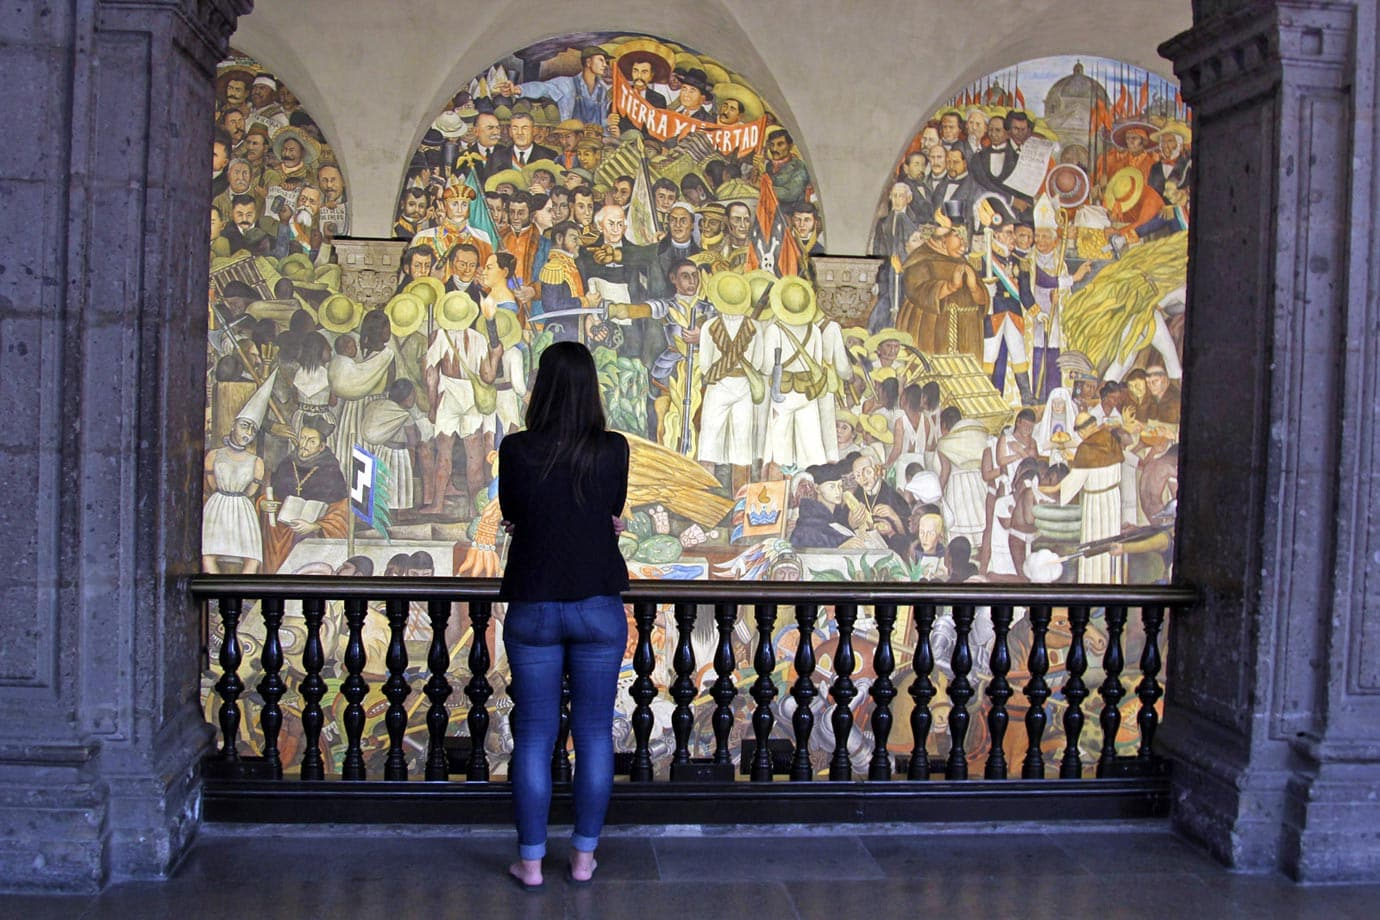 Looking at a mural in the National Palace of Mexico